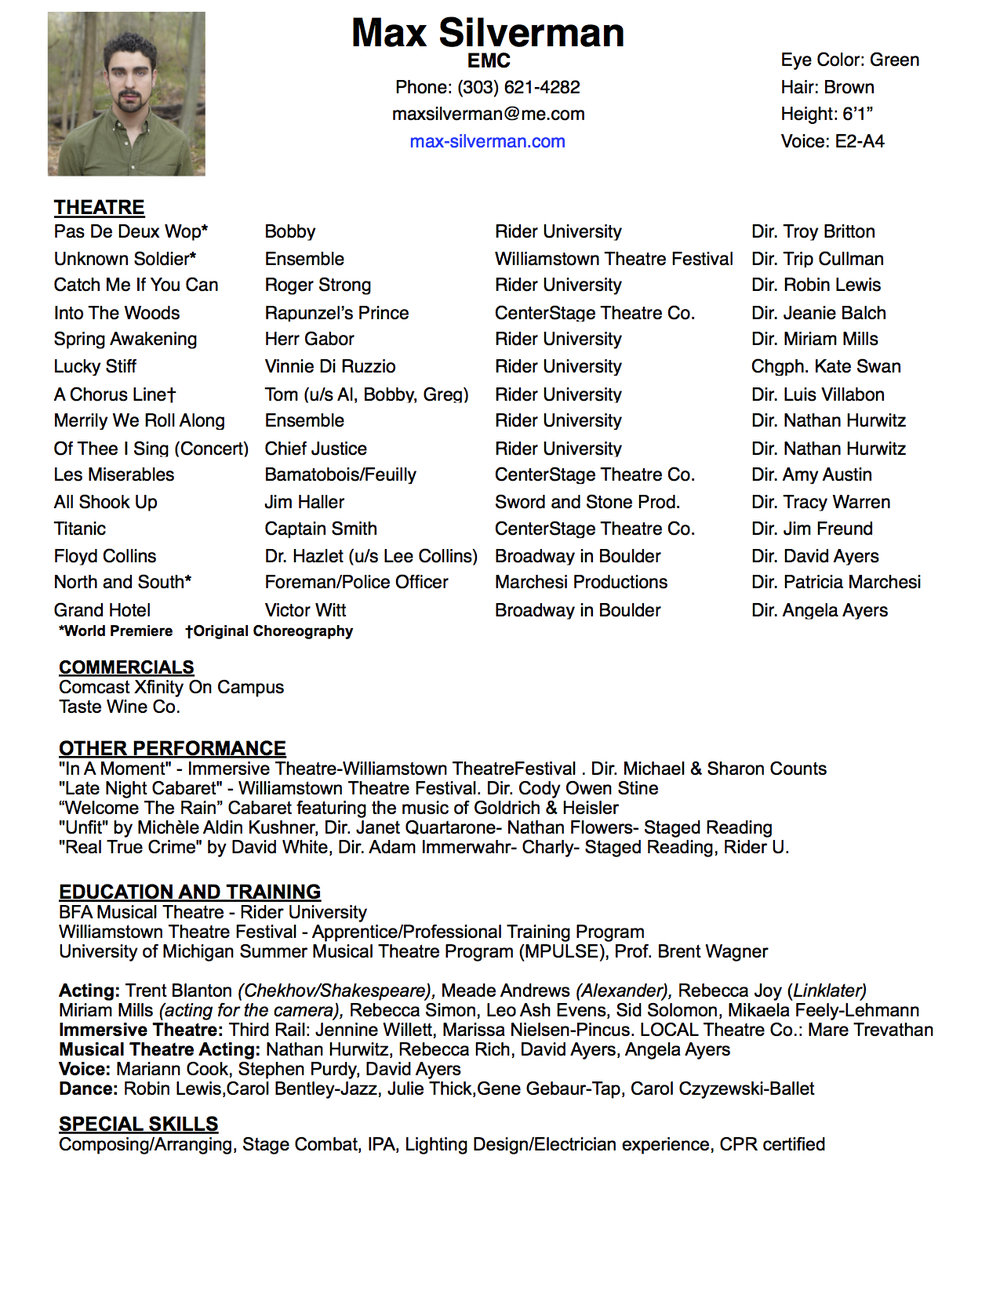 Max Silverman  Performance Resume